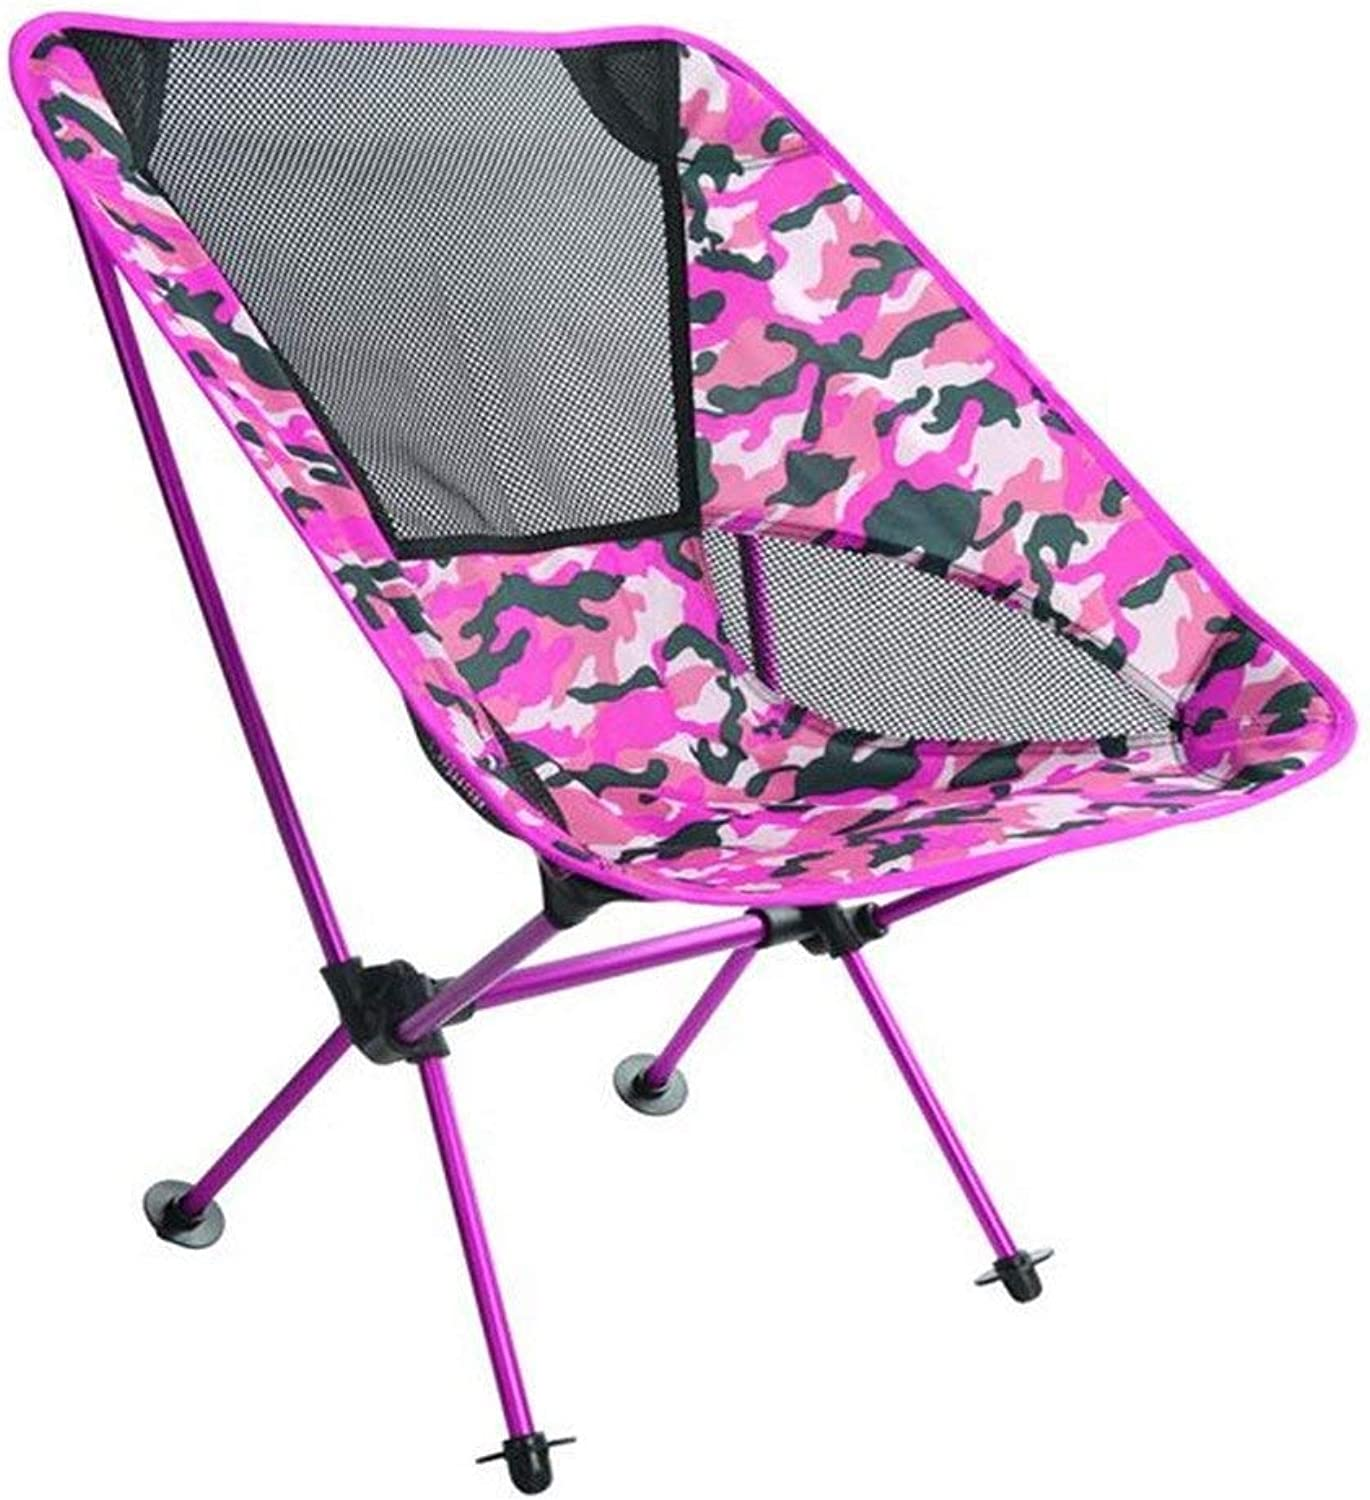 IRVING Lightweight Portable Camping Chair Outdoor Folding Backpacking Camp Lounge Chairs for Sports Picnic Beach Hiking Fishing (color   E)